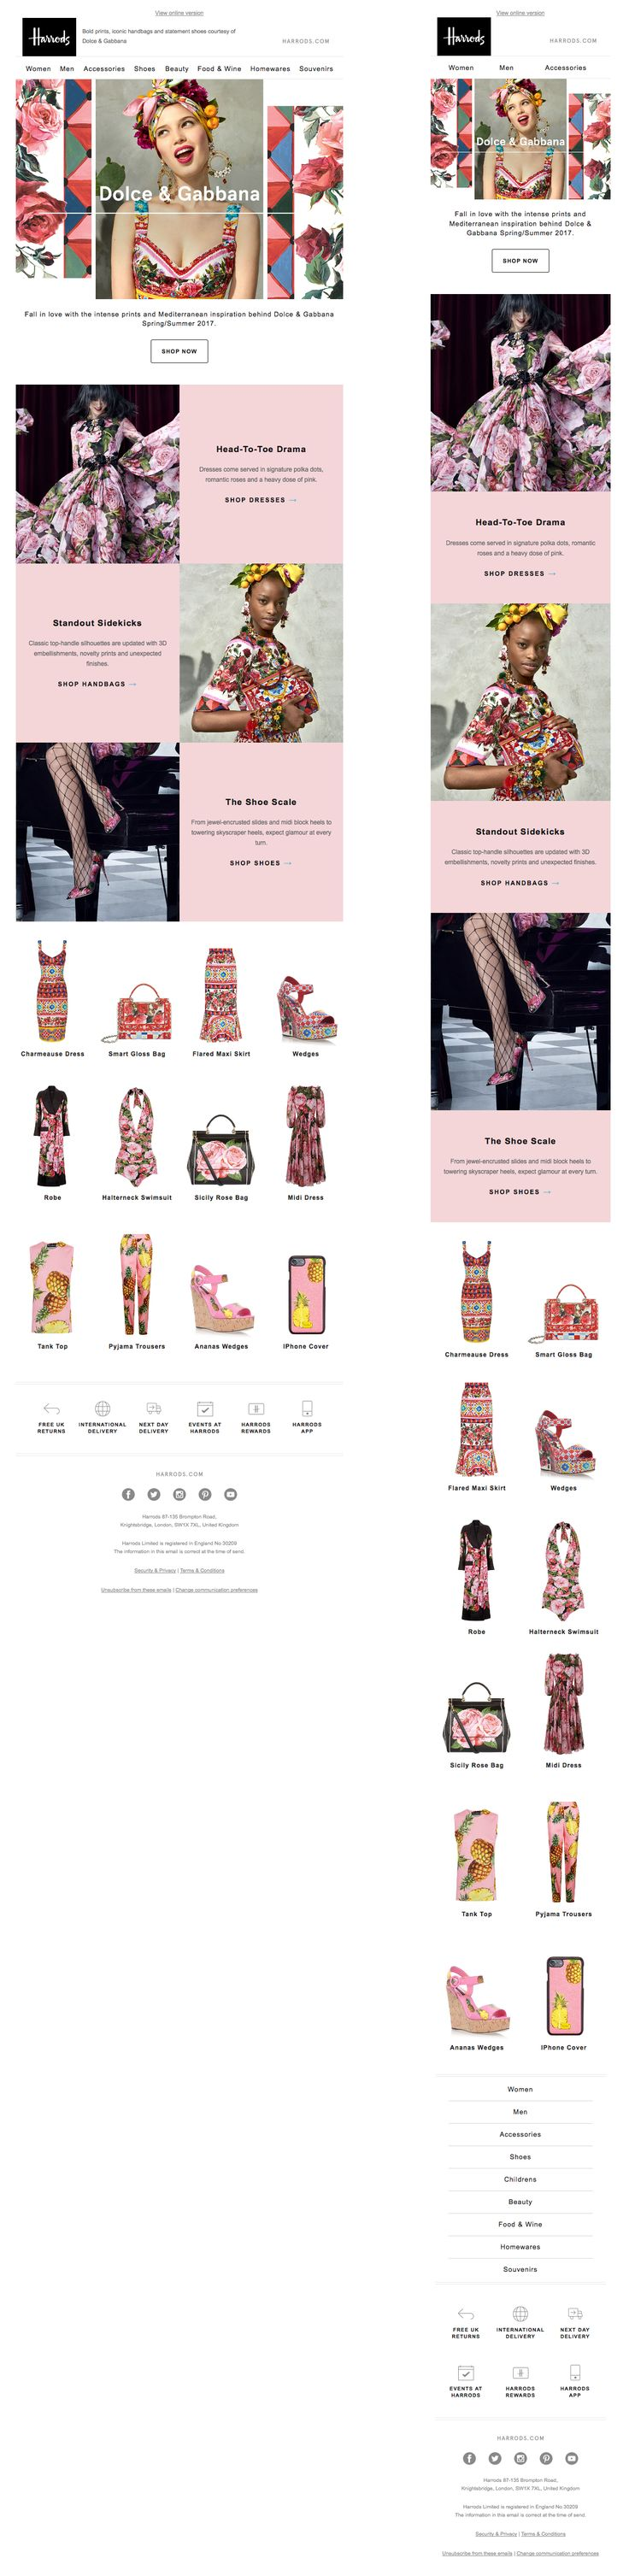 Beautiful responsive email design from Harrods #emaildesign